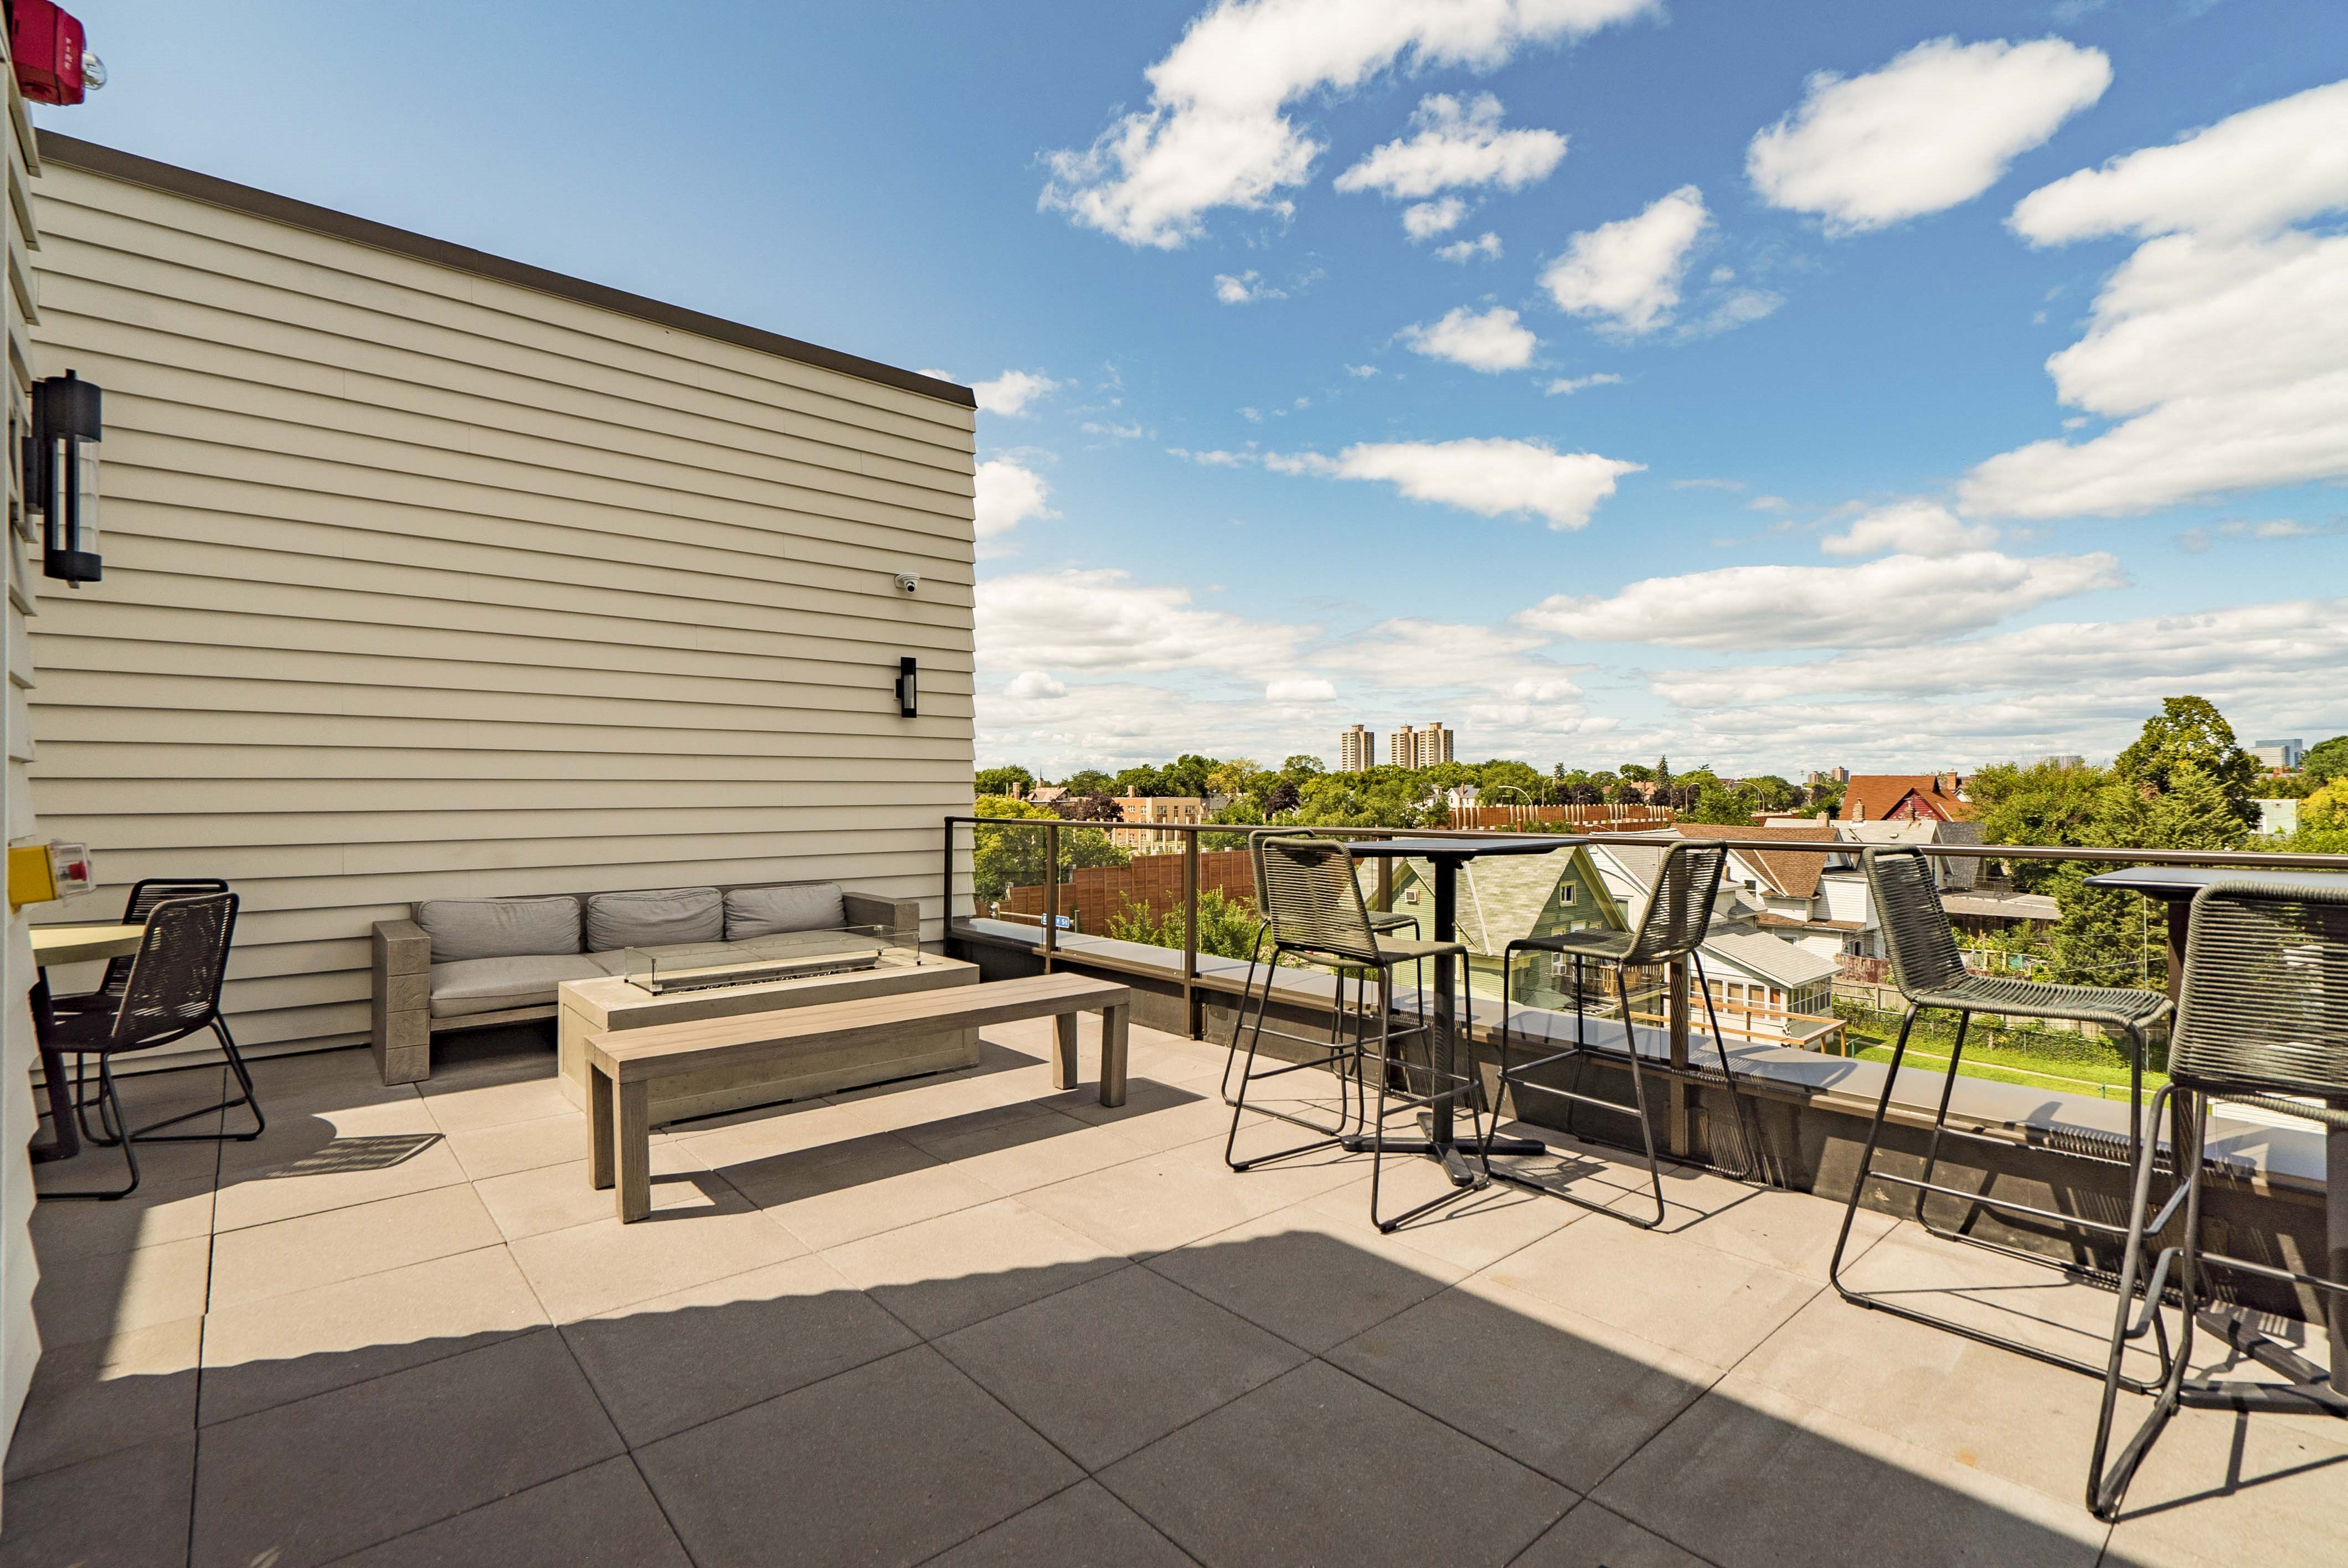 Rooftop patio and outdoor firepit at The Central apartments near downtown Minneapolis MN 55408